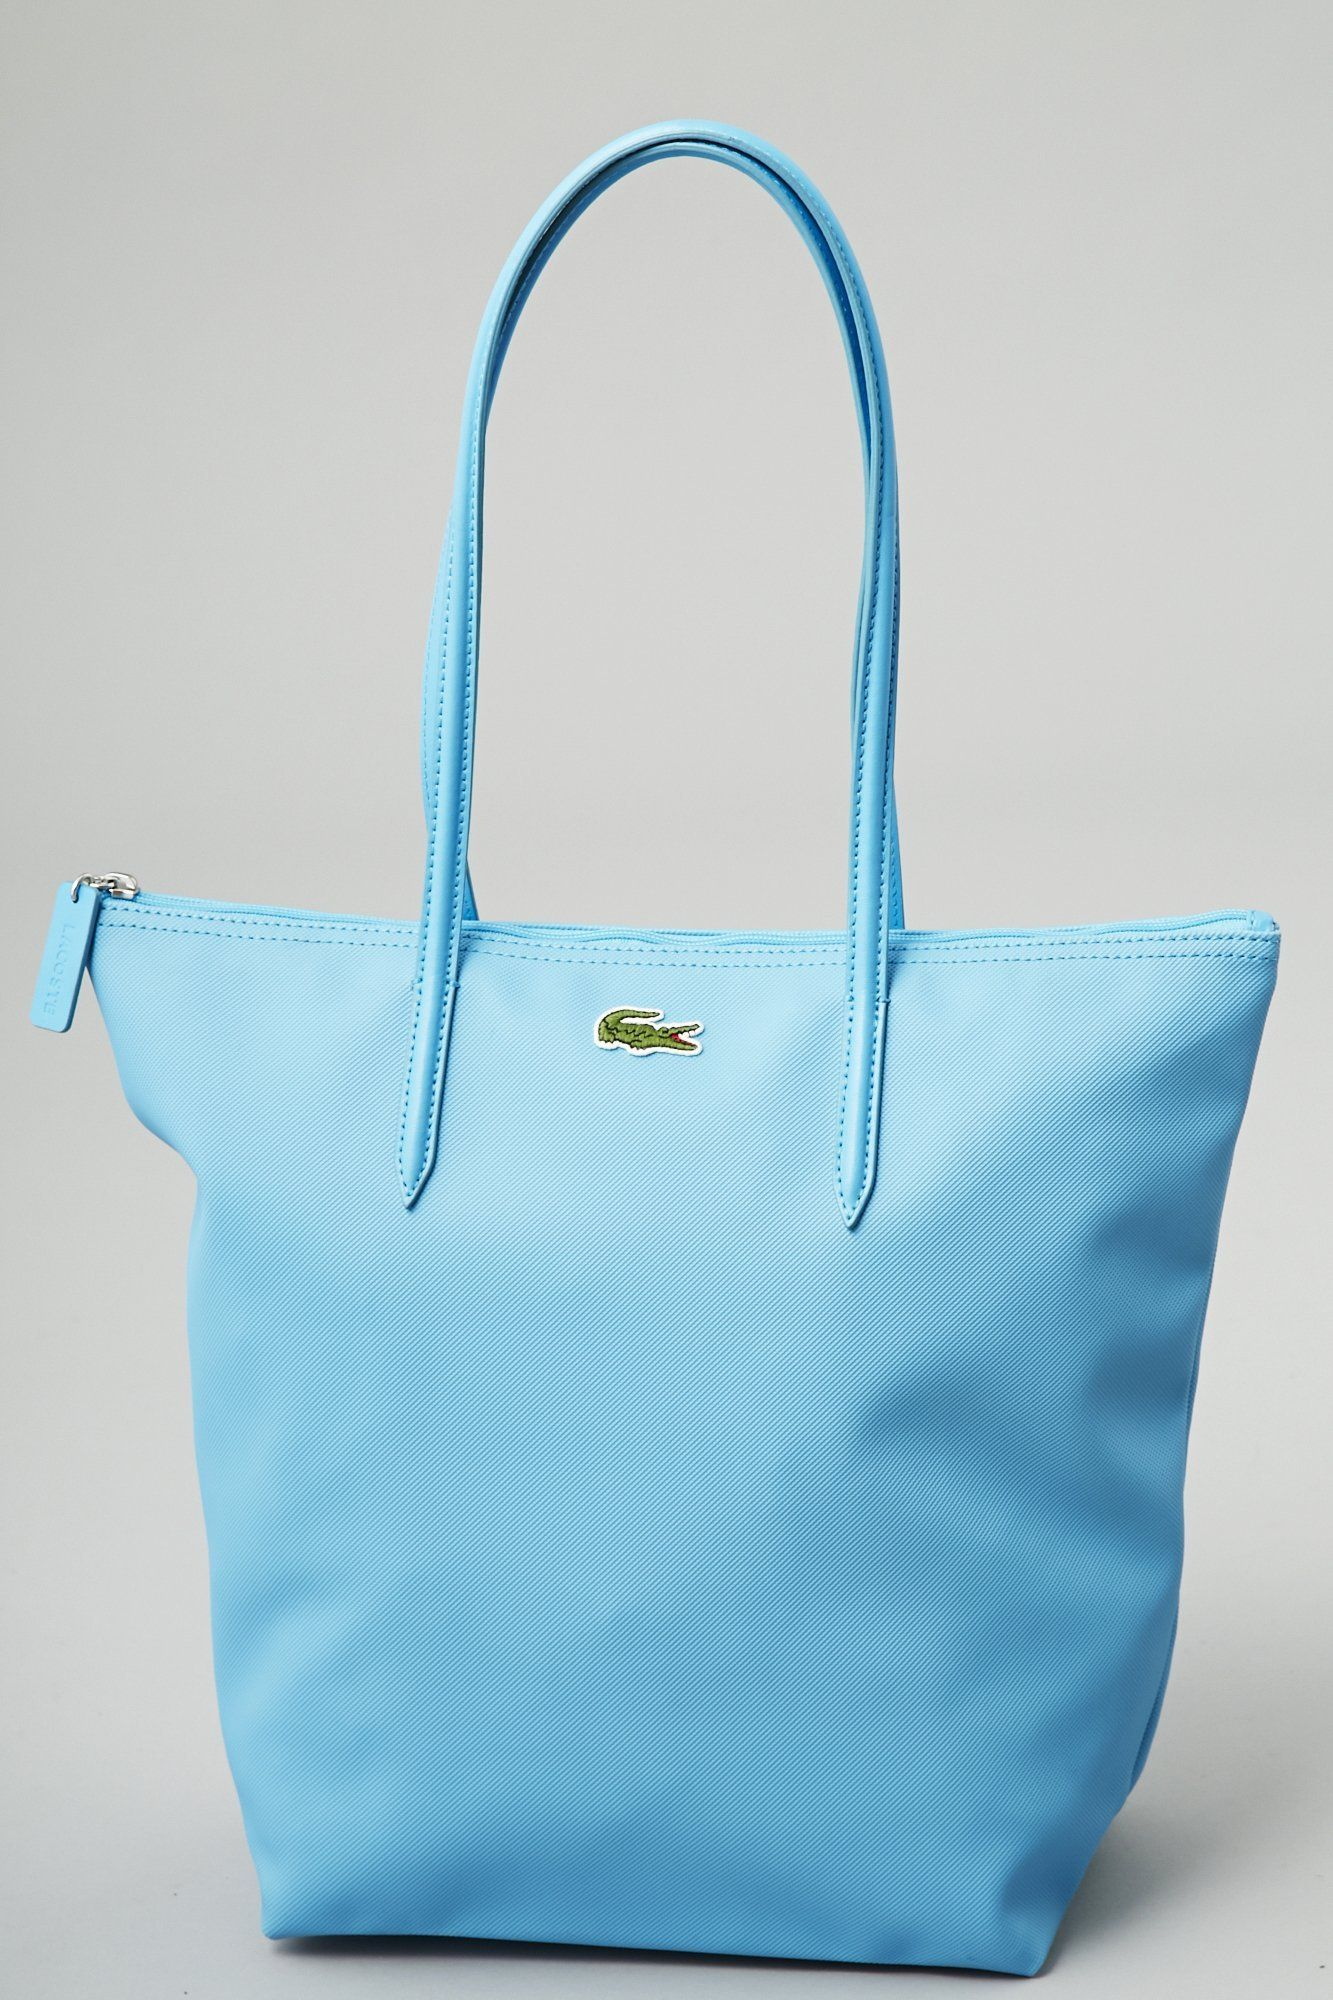 aa2b6dbf13c Lacoste #skyblue tote bag | Carry me | Bags, Lacoste, Tote Bag